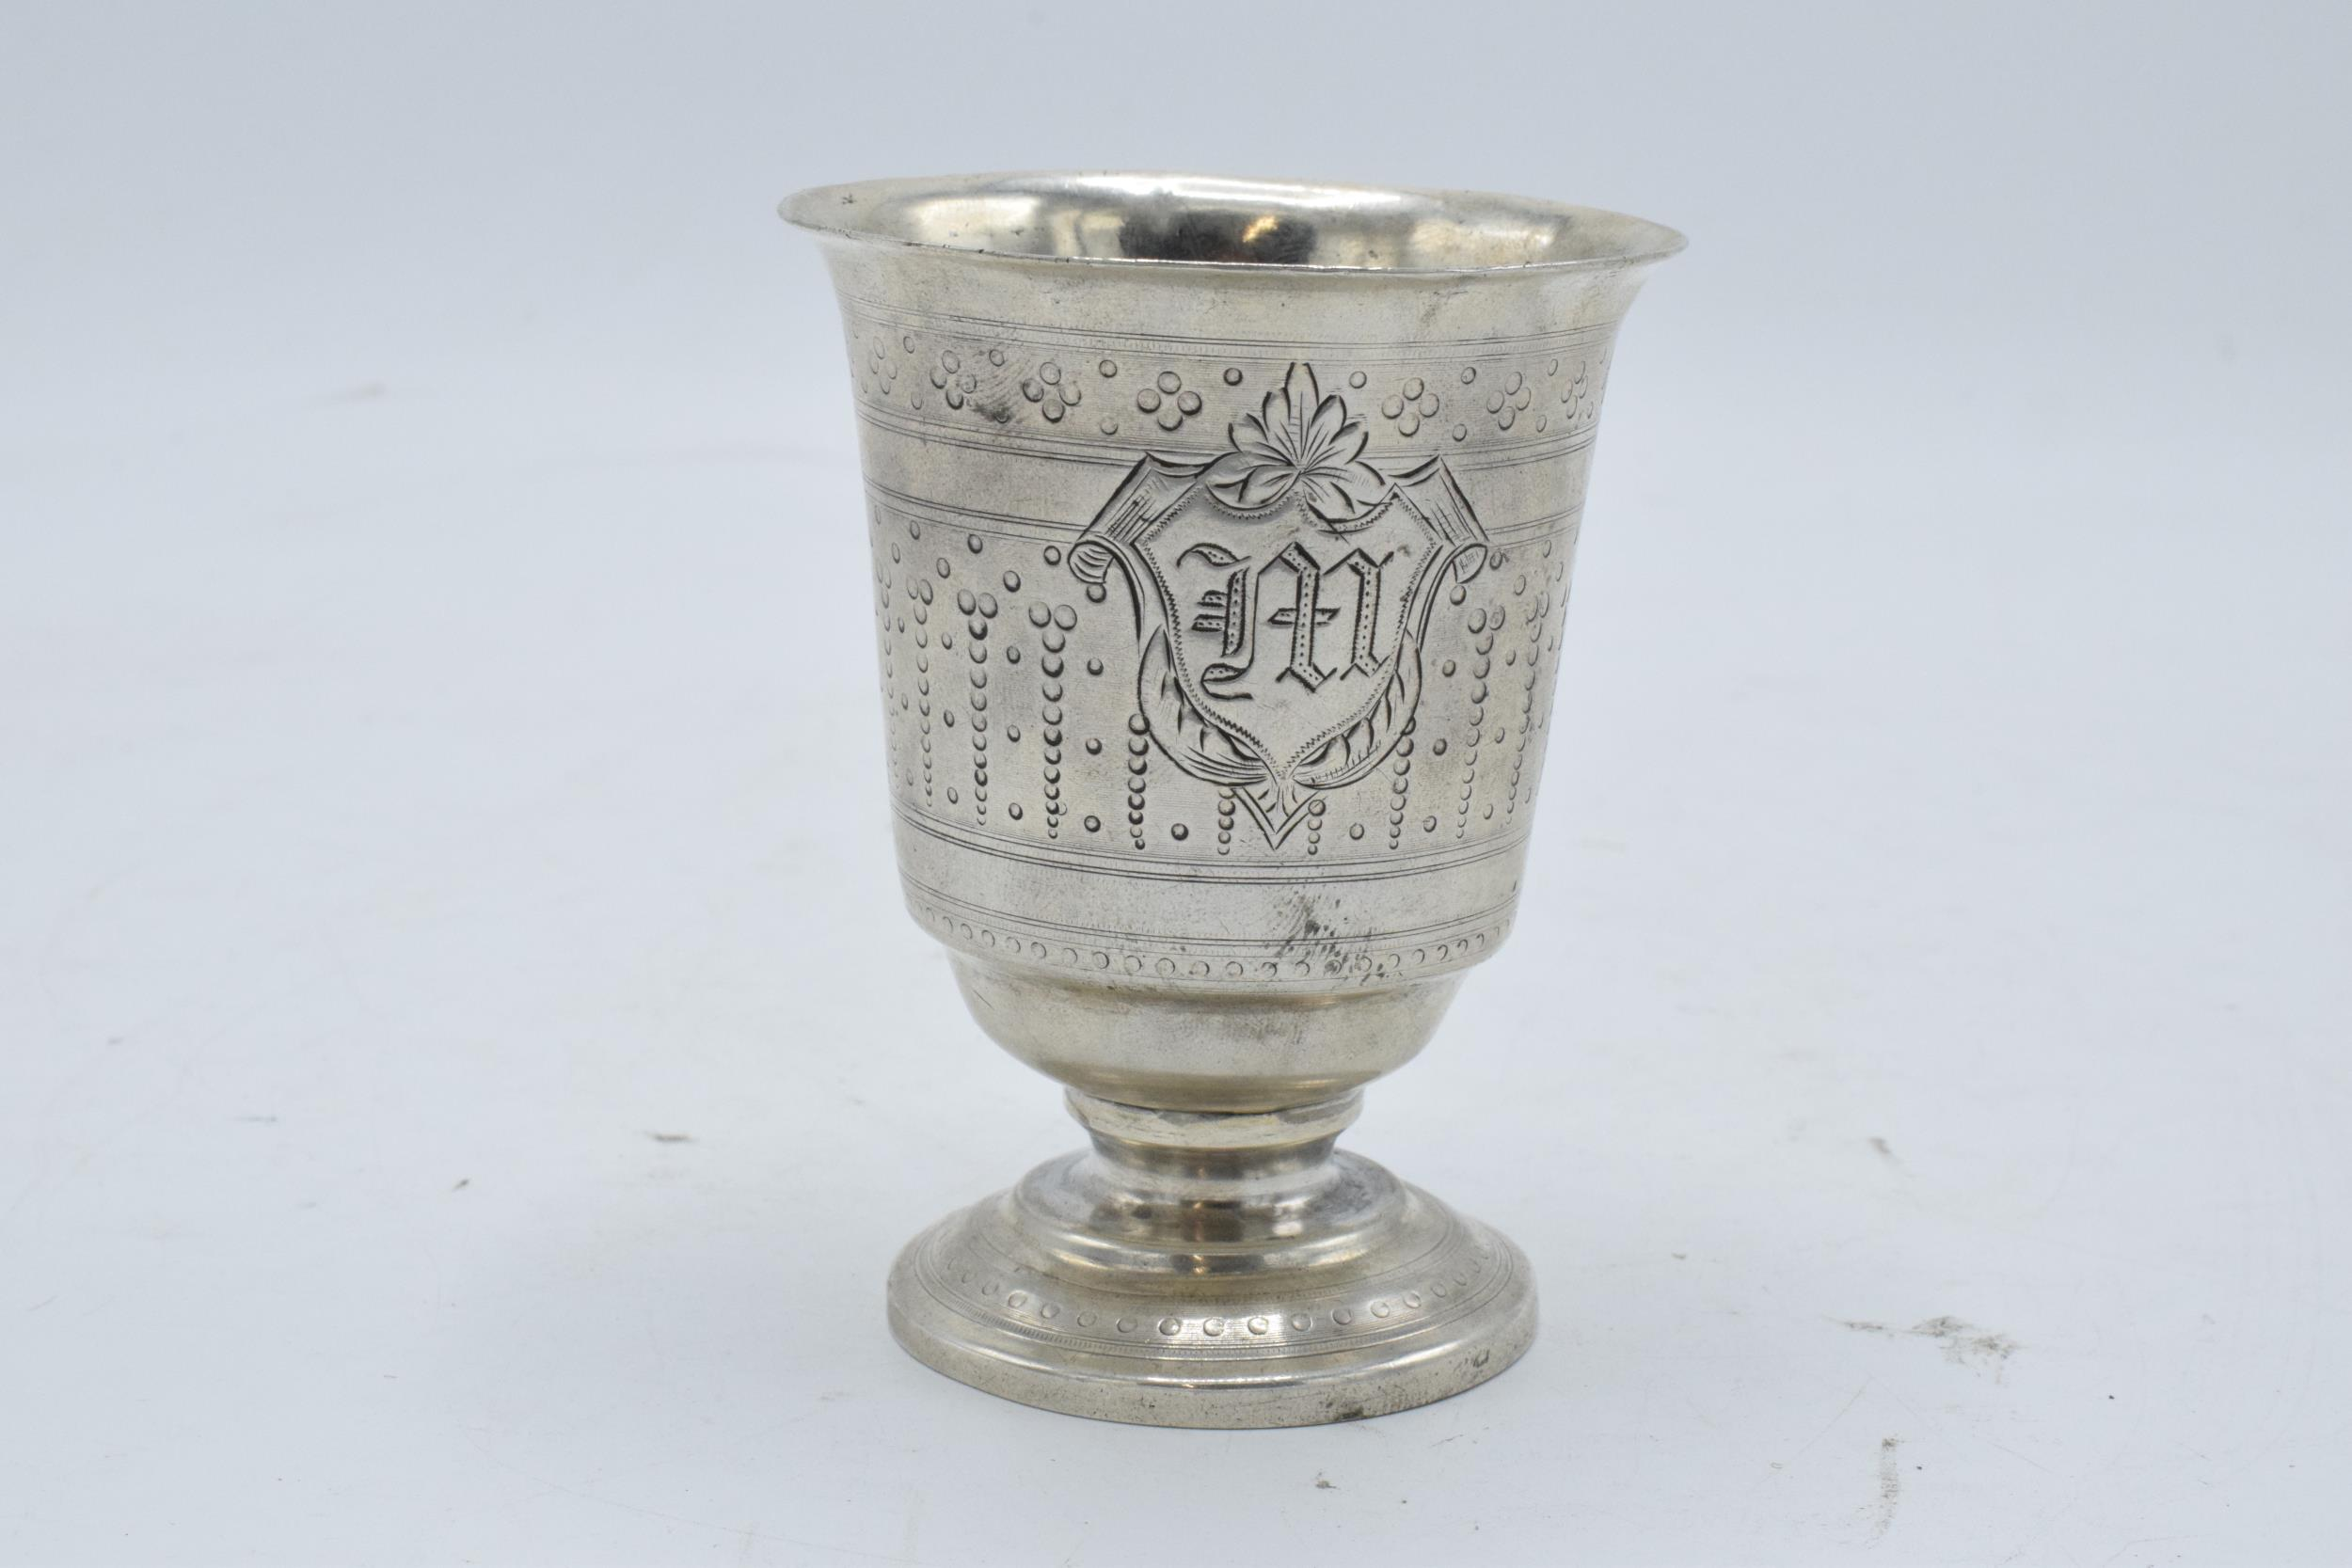 Continental silver footed beaker with engraved decoration. 9cm tall. 63.3 grams. - Image 2 of 5